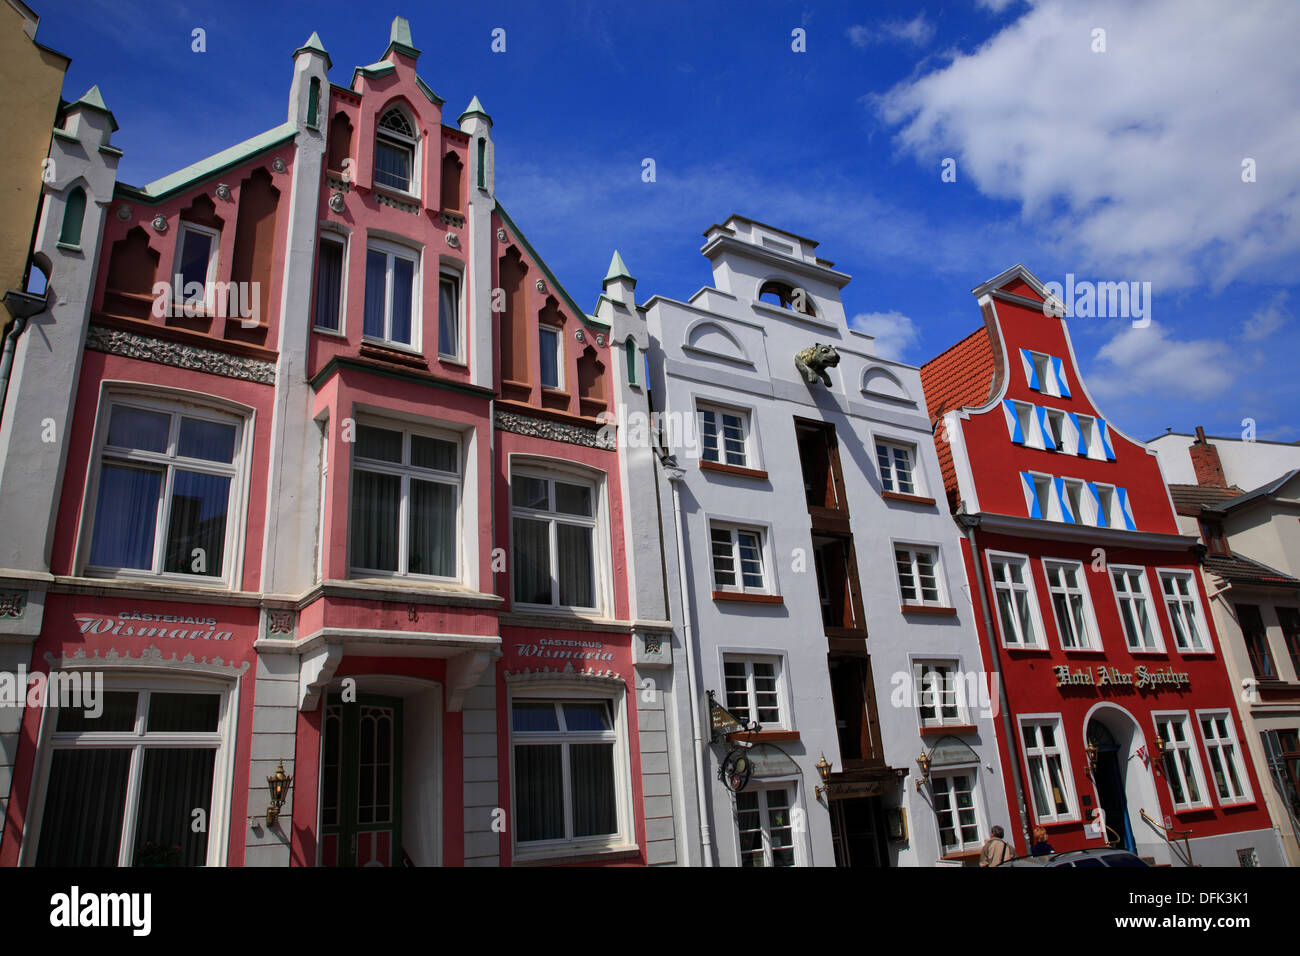 Wismar, Gable houses at Bohrstrasse, Baltic Sea, Mecklenburg West Pomerania, Germany - Stock Image